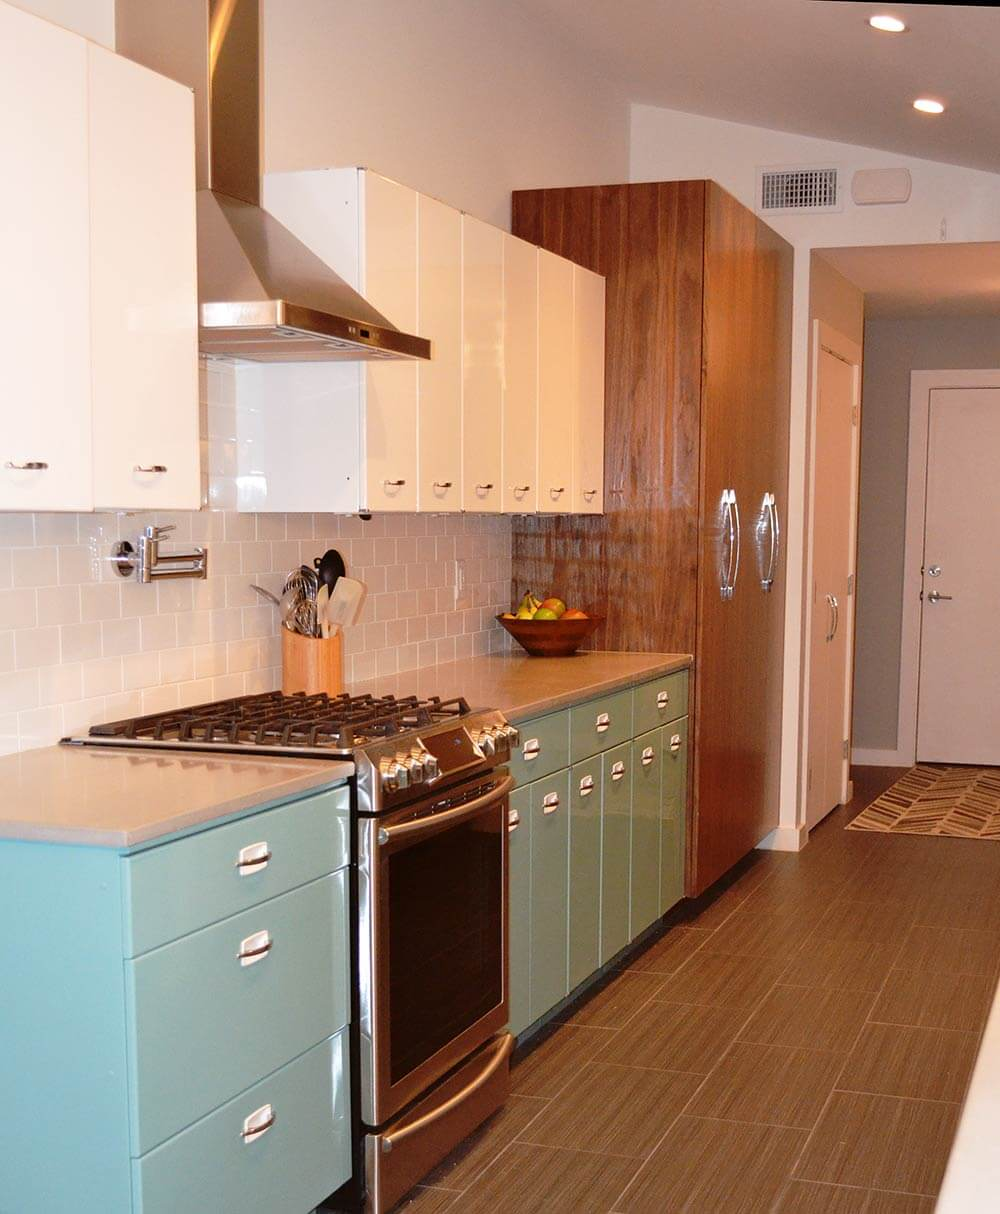 Sam Has A Great Experience With Powder Coating Her Vintage Steel Kitchen Cabi